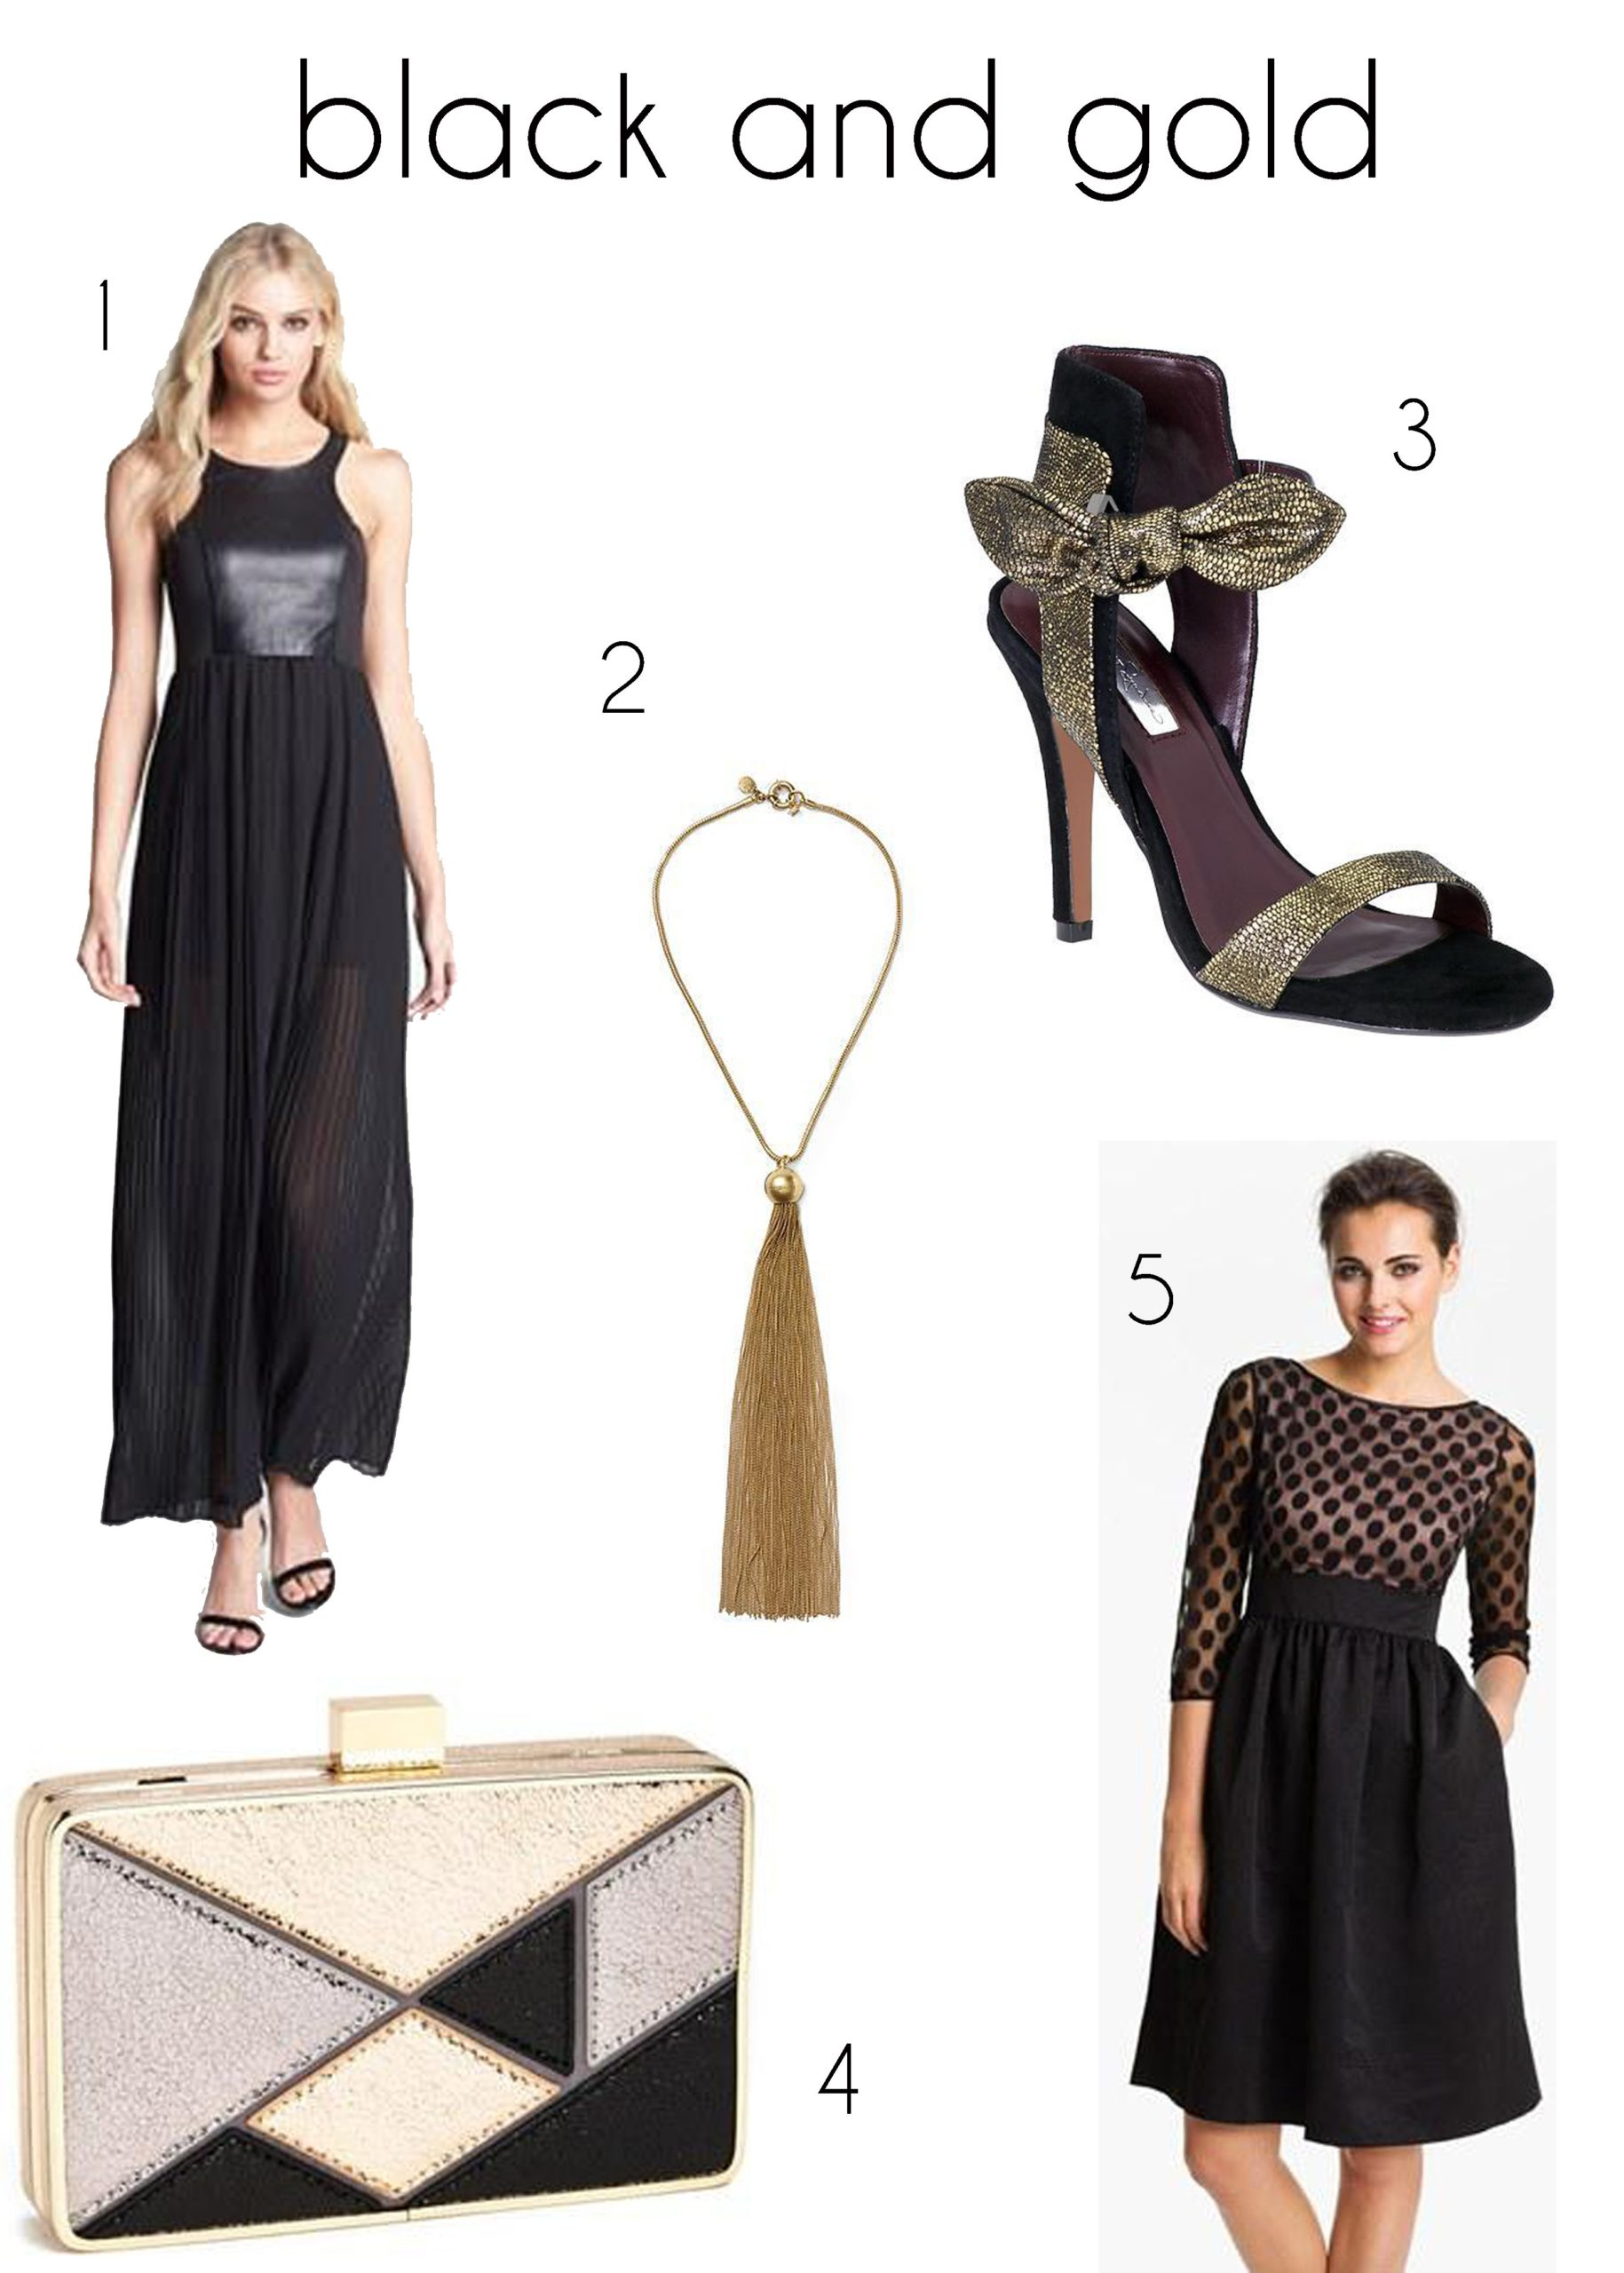 Trade in silver and gold for black and gold at your next party this year https://heidipowell.net/5504